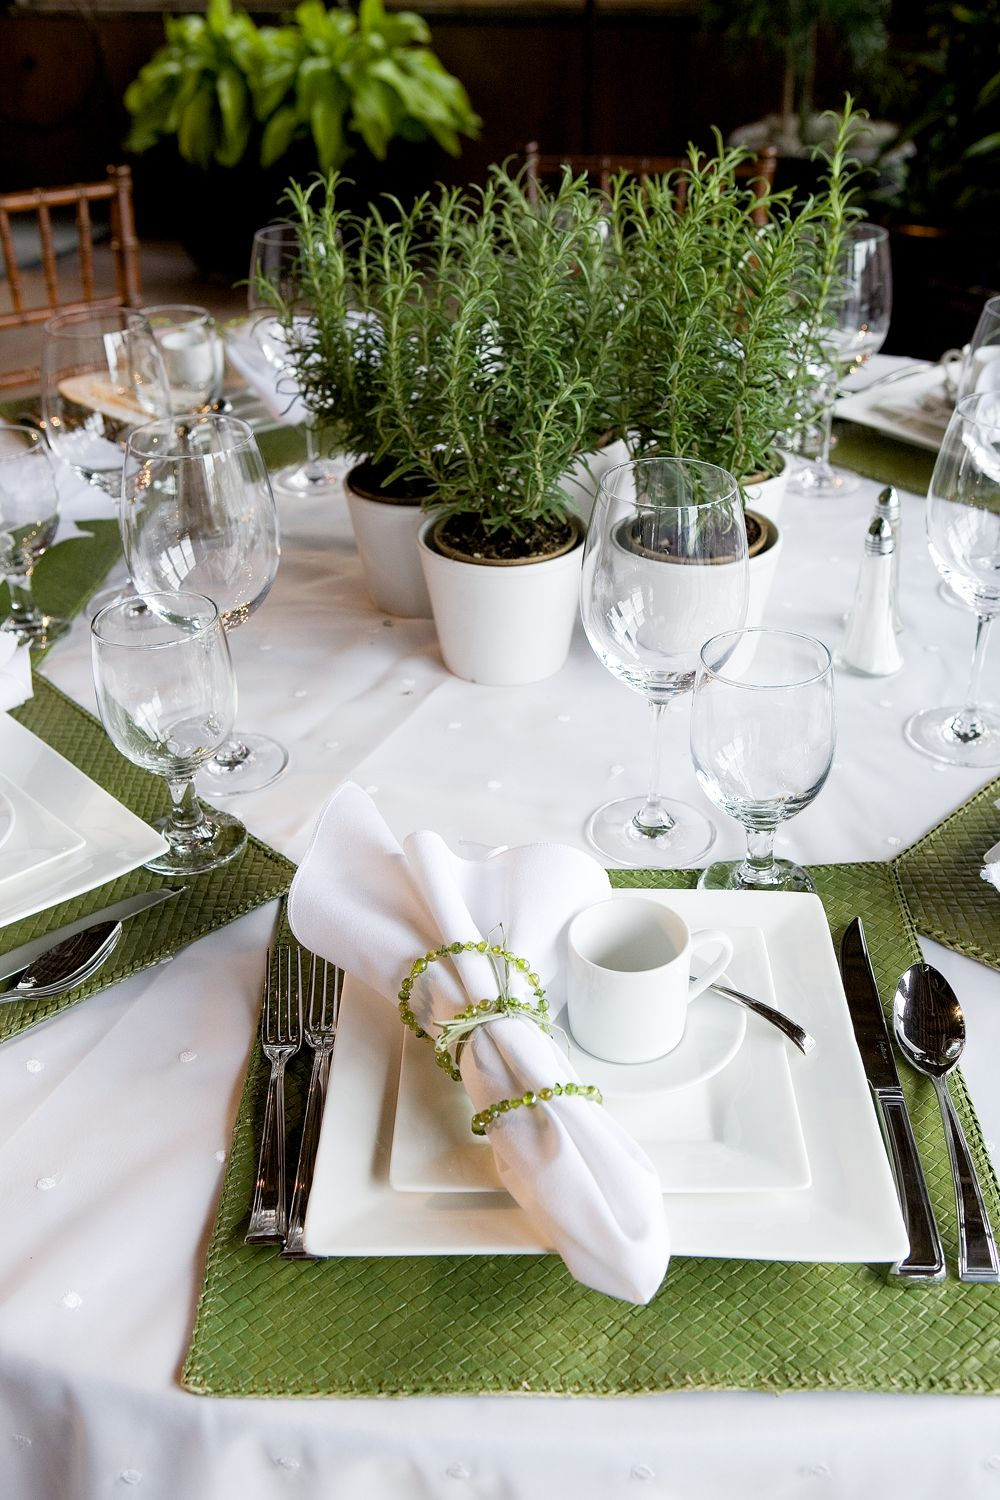 Rosemary, white & green for a summery table setting table scape ...